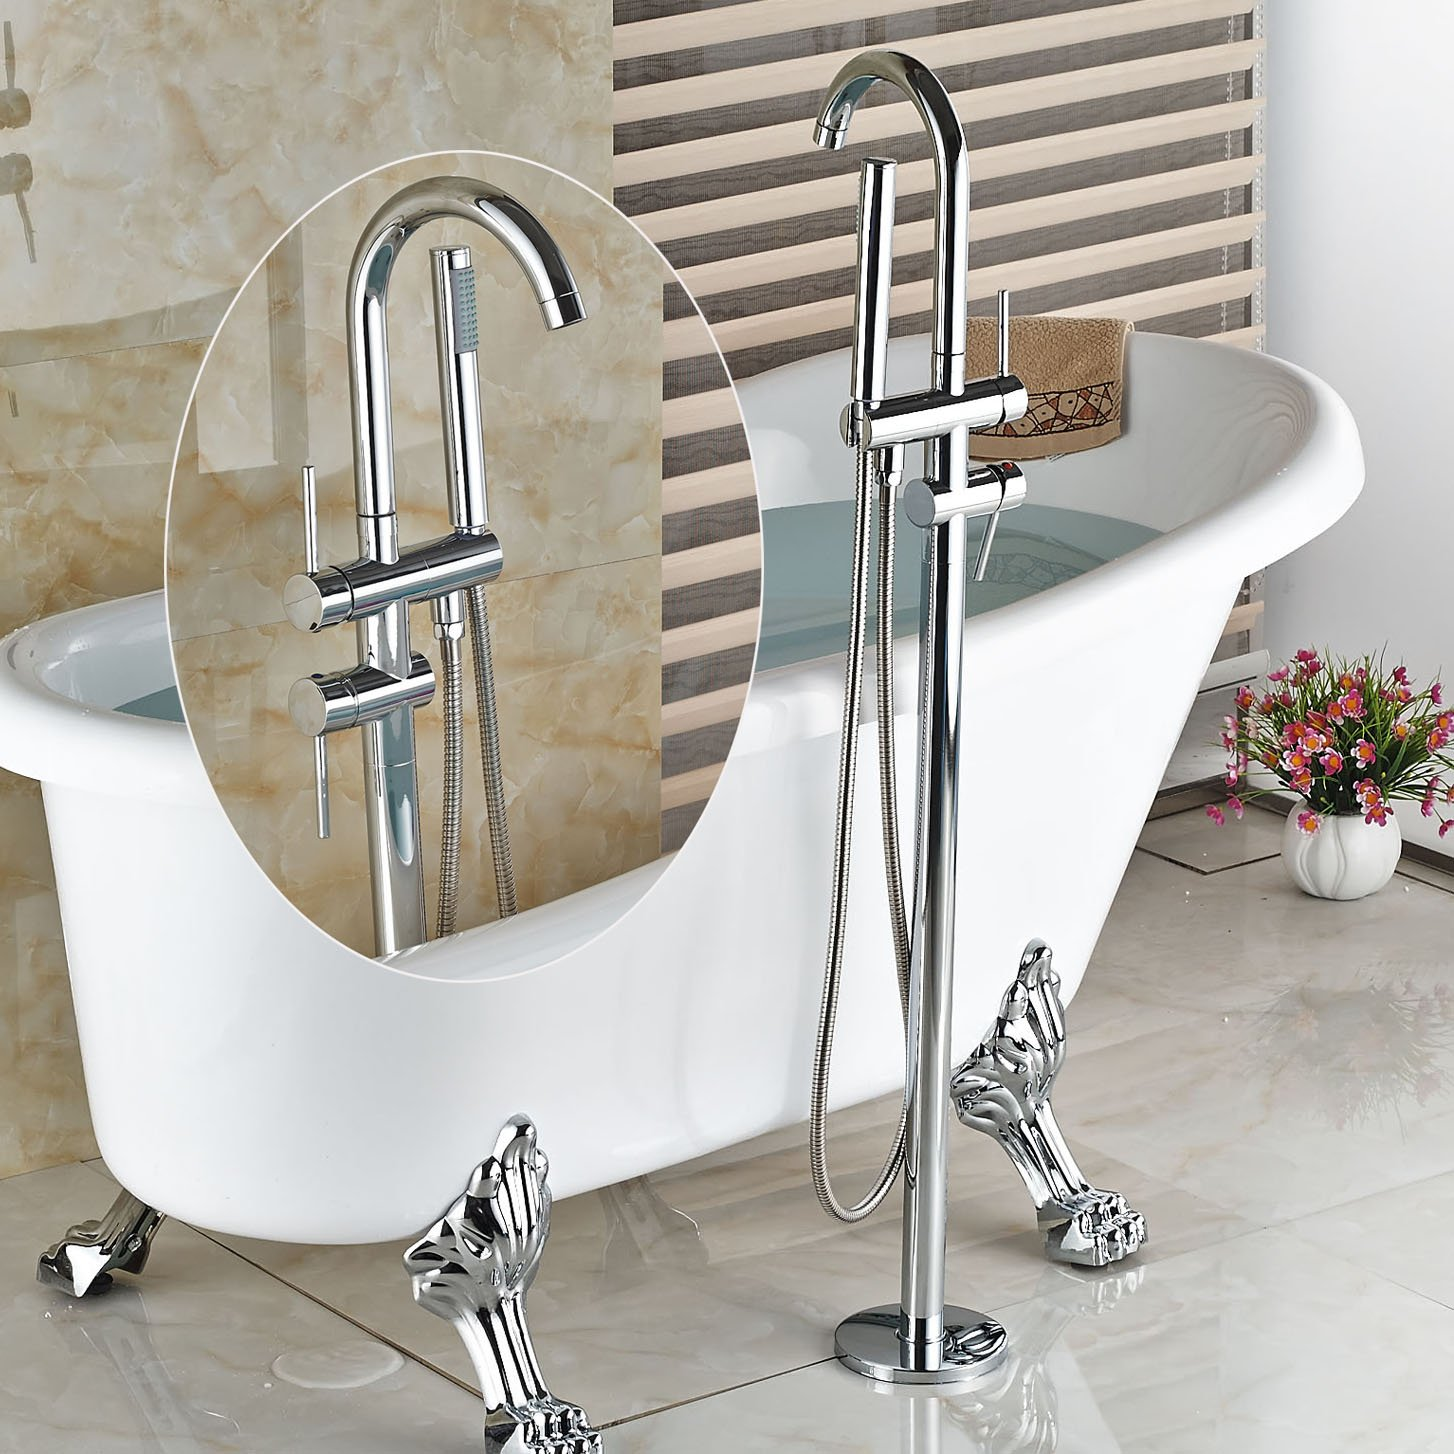 Rozin Chrome Floor Mounted Bathtub Faucet Standing Mixer Tap with ...